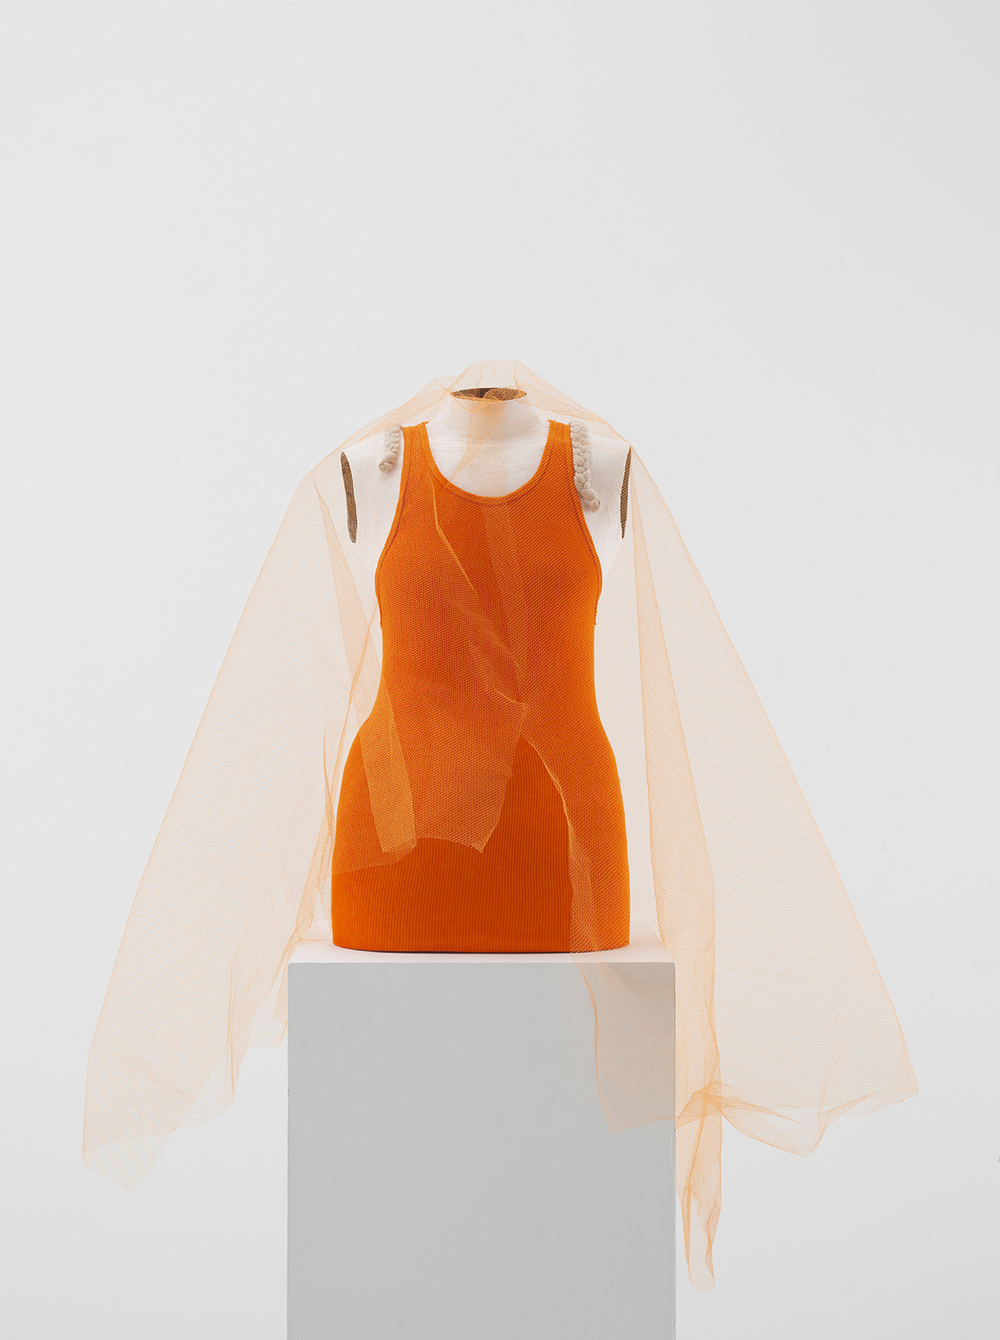 Sculpture ORANGE